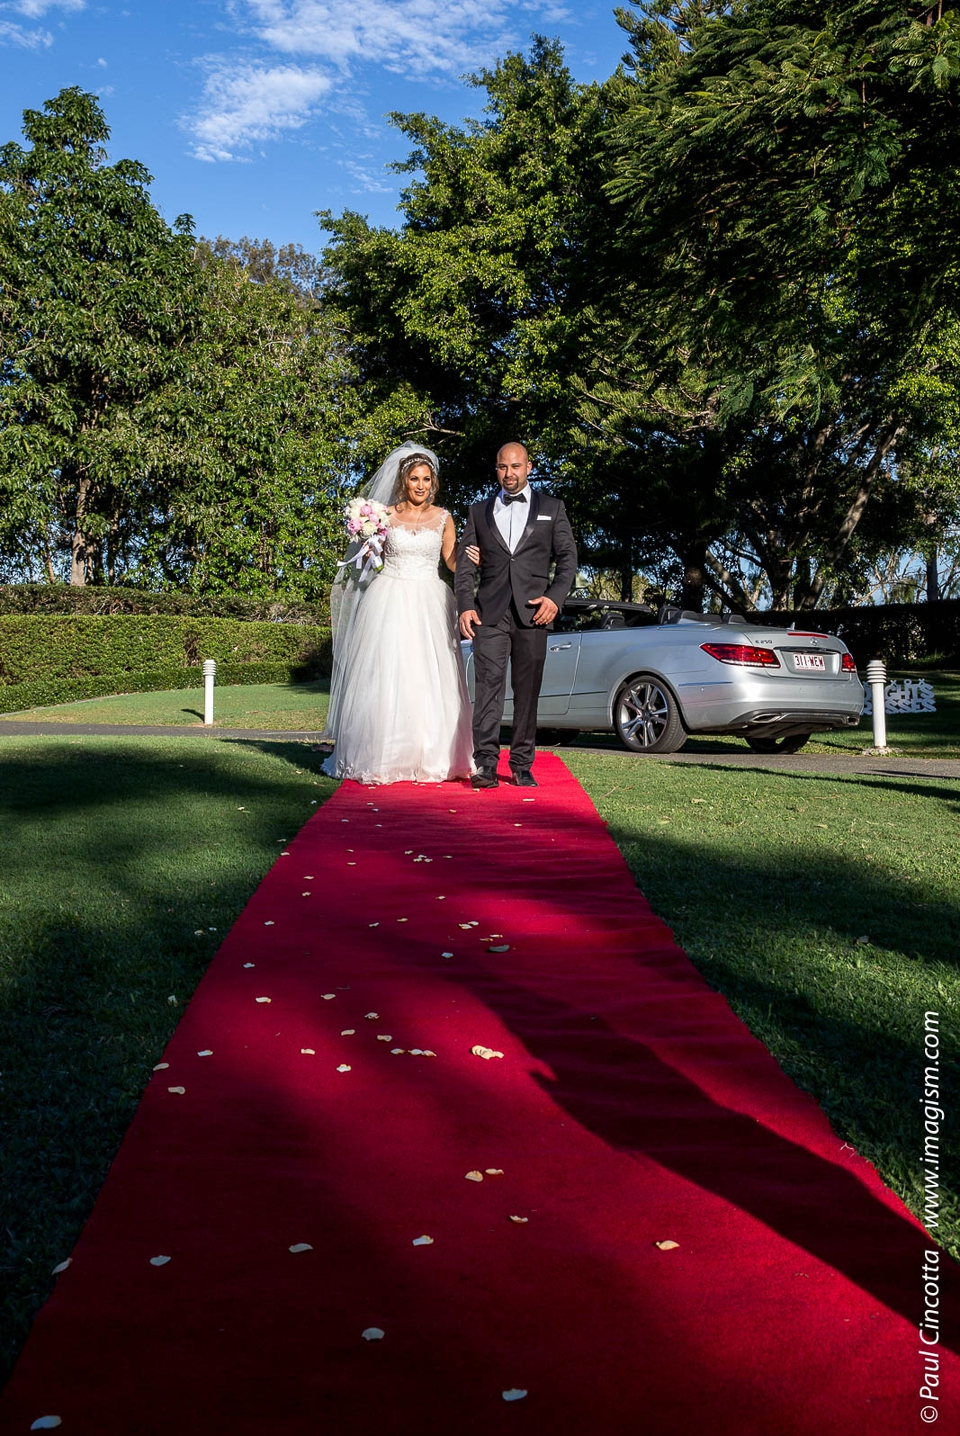 Gold Coast Wedding Photographer - imagism Photography by Paul Cincotta 11.jpg